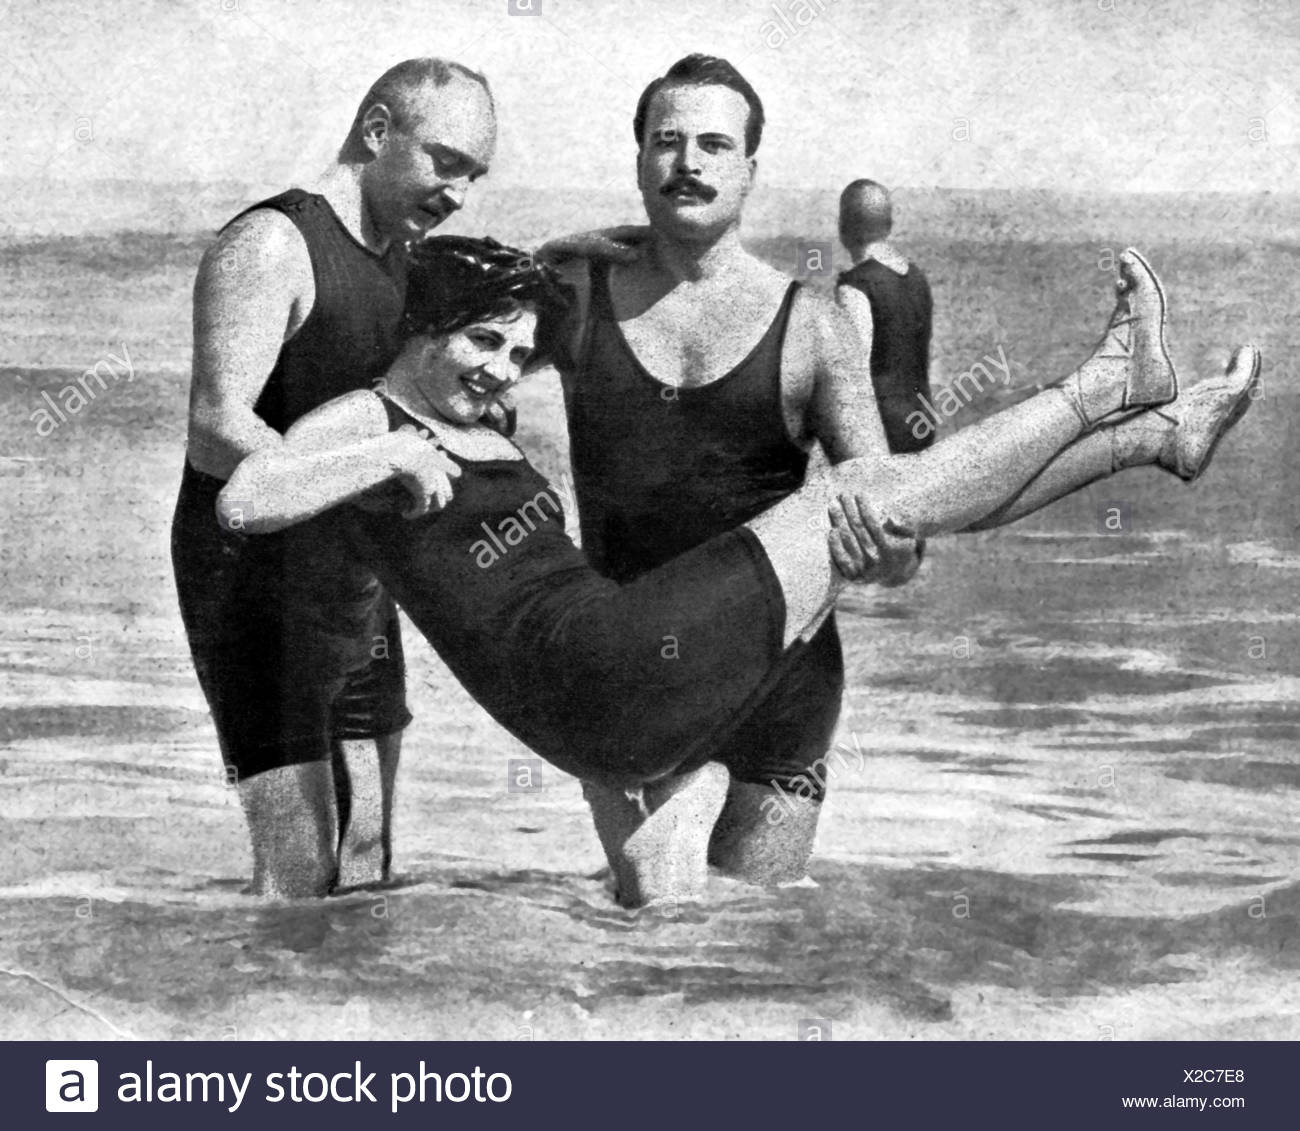 Boris Vladimirovich, 24.11.1877 - 9.11.1943, Grand Duke of Russia, with the dancer Ms. Gregovitch at the beach at Ostend, Belgium, 1912, Additional-Rights-Clearances-NA - Stock Image